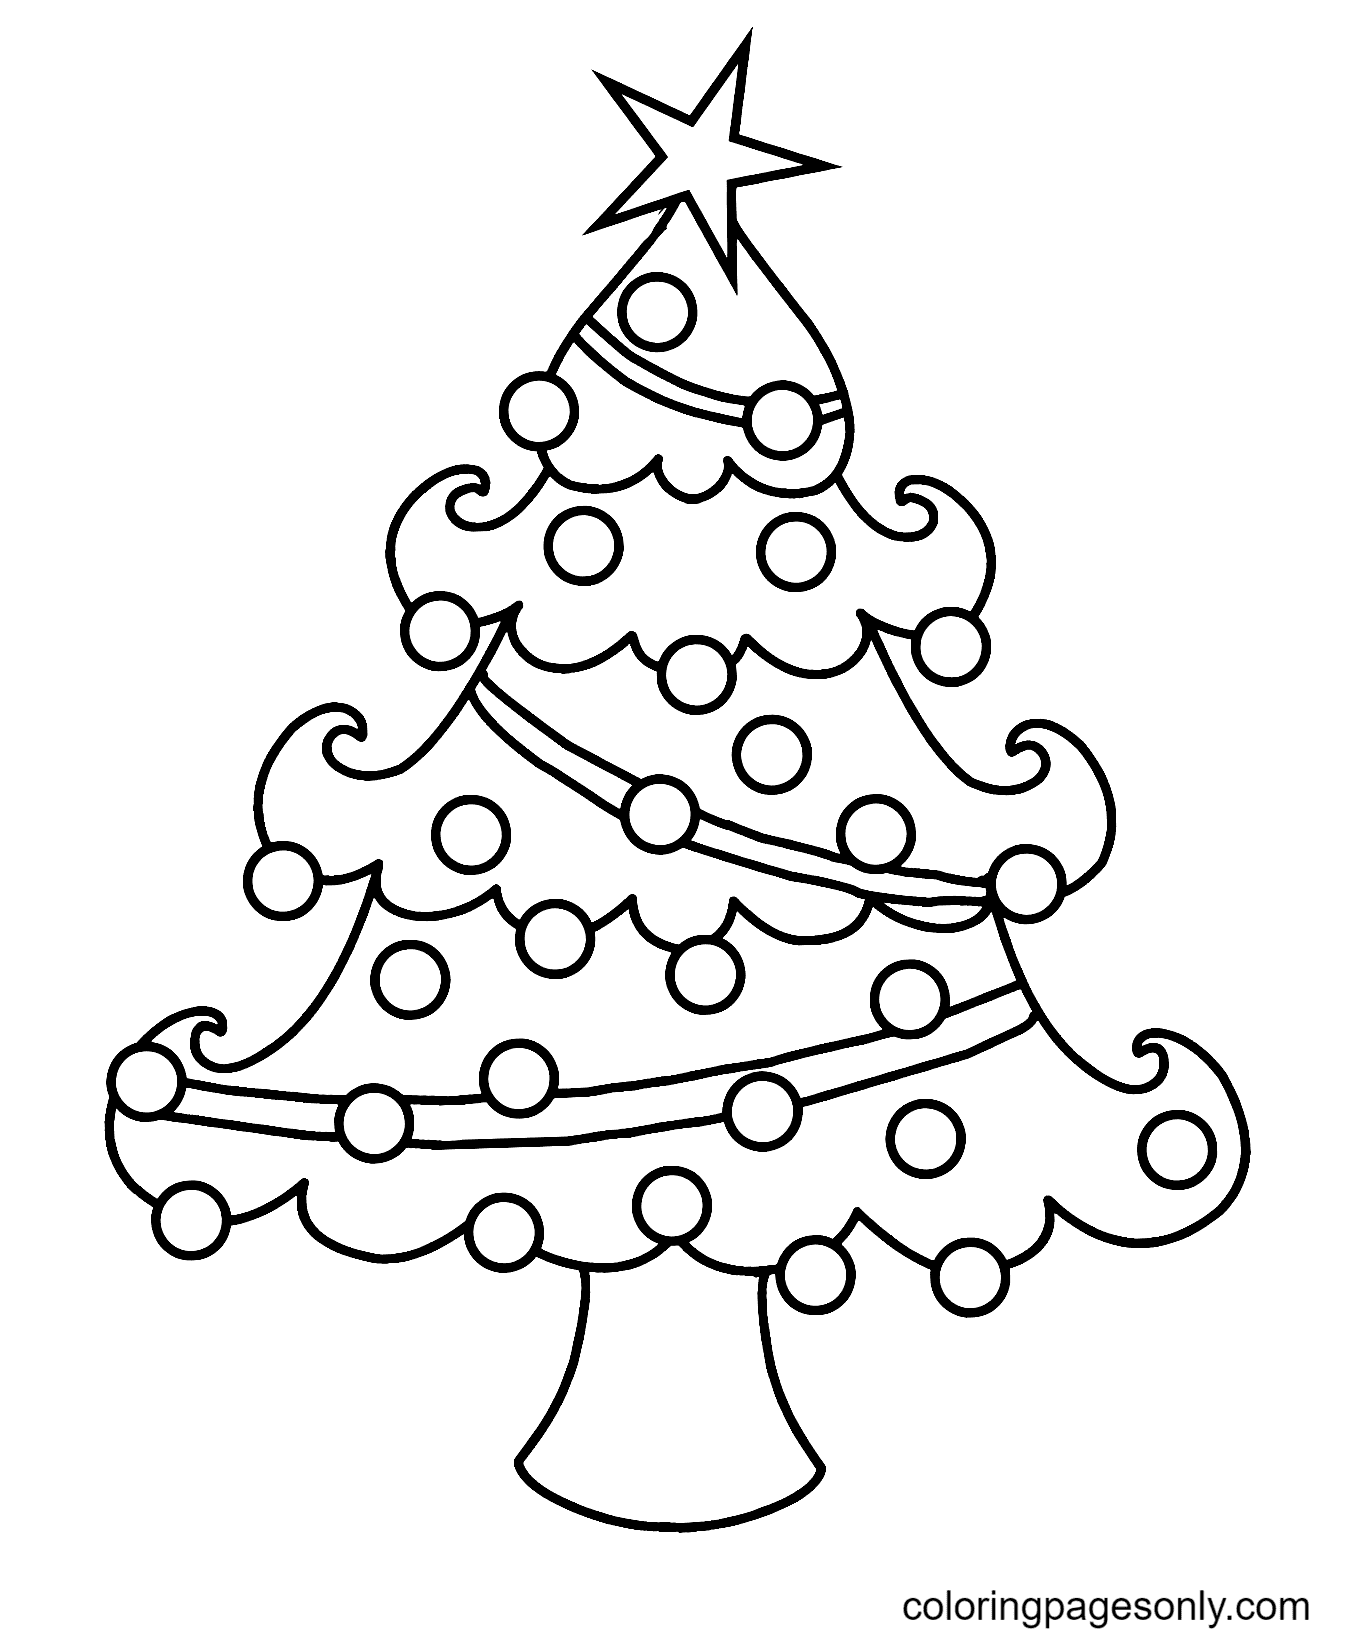 Christmas Tree with Ornaments Coloring Page